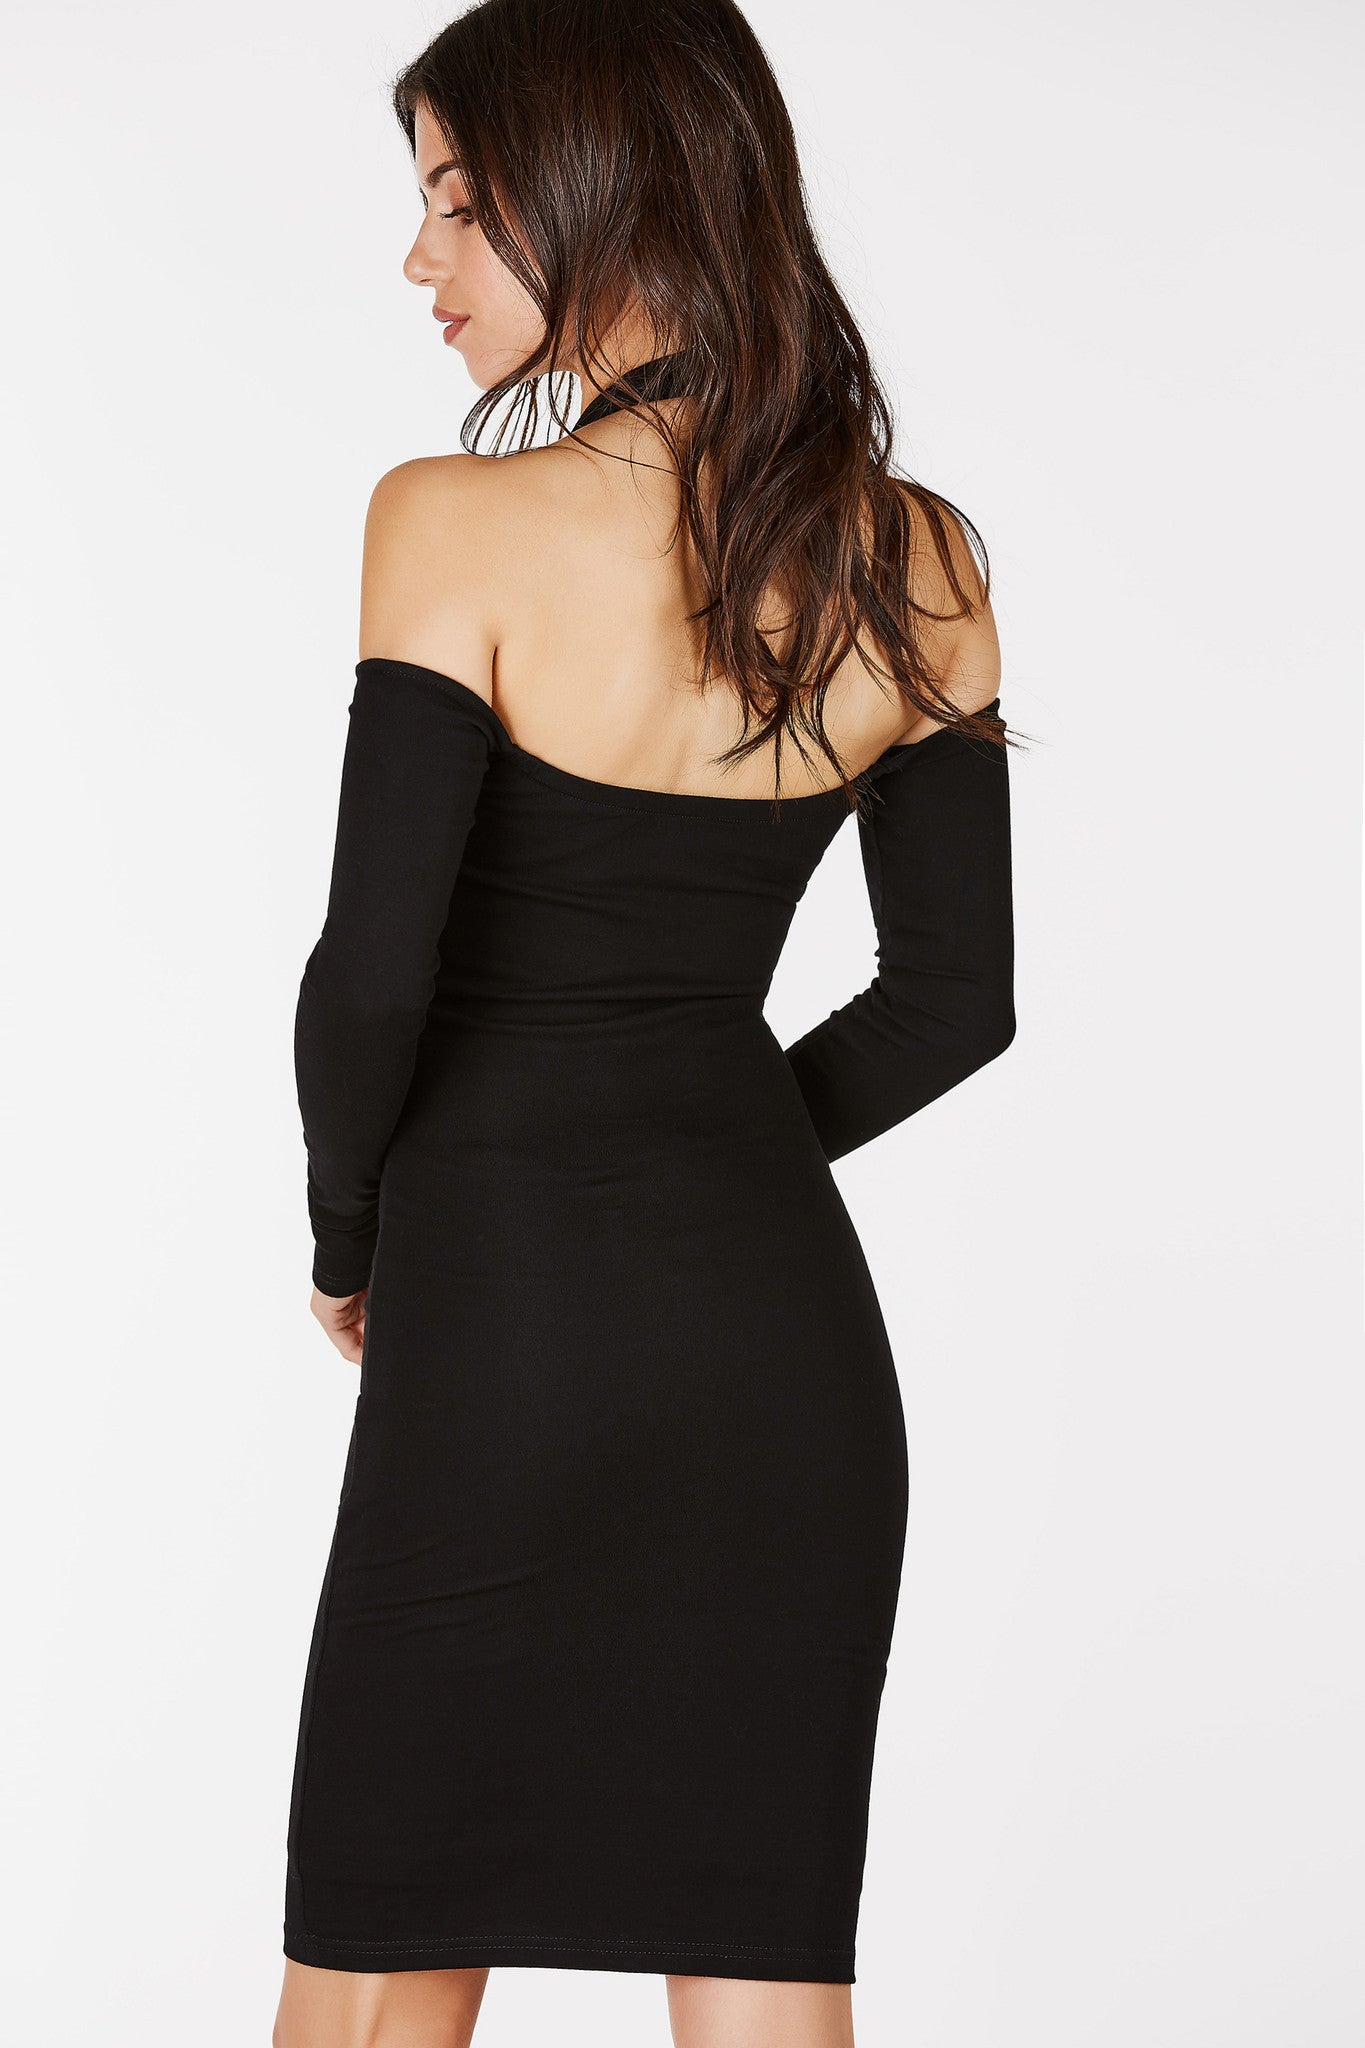 Choker neckline long sleeve midi dress. Gold eyelet detailing with lace up design in front. Fully lined with off shoulder cut out.